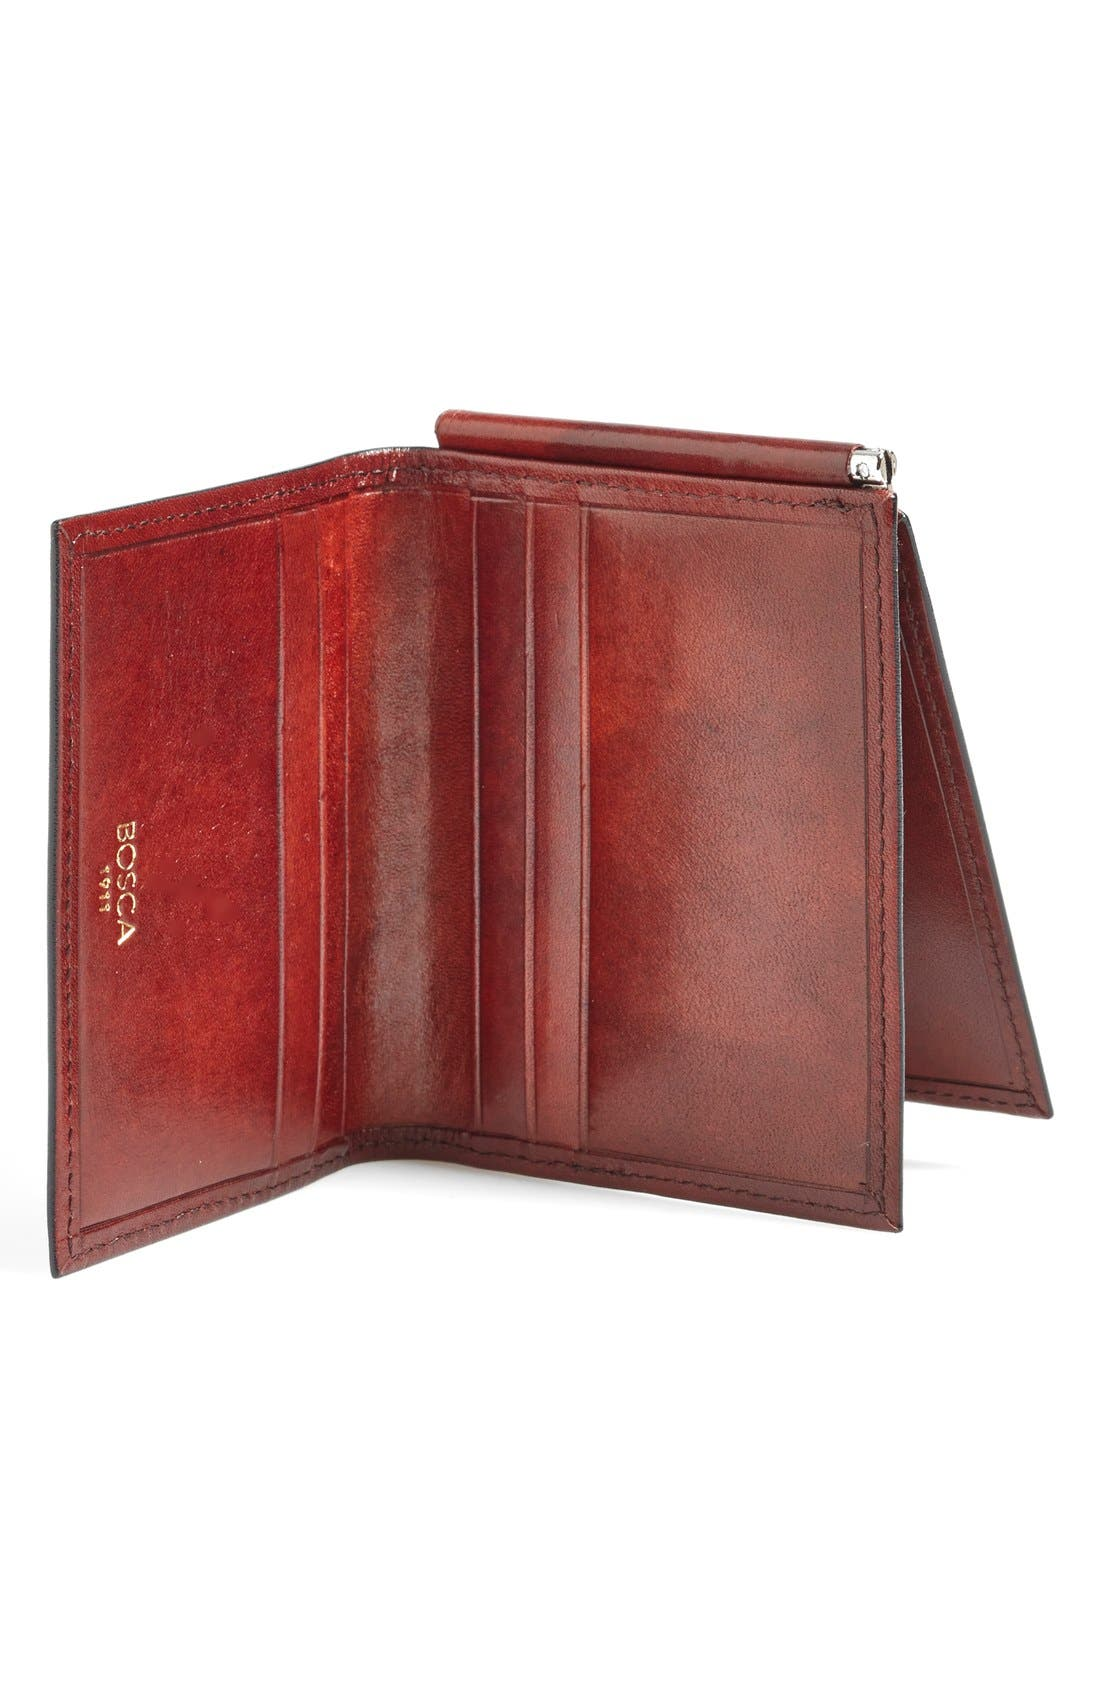 Alternate Image 2  - Bosca 'Old Leather' Money Clip Wallet